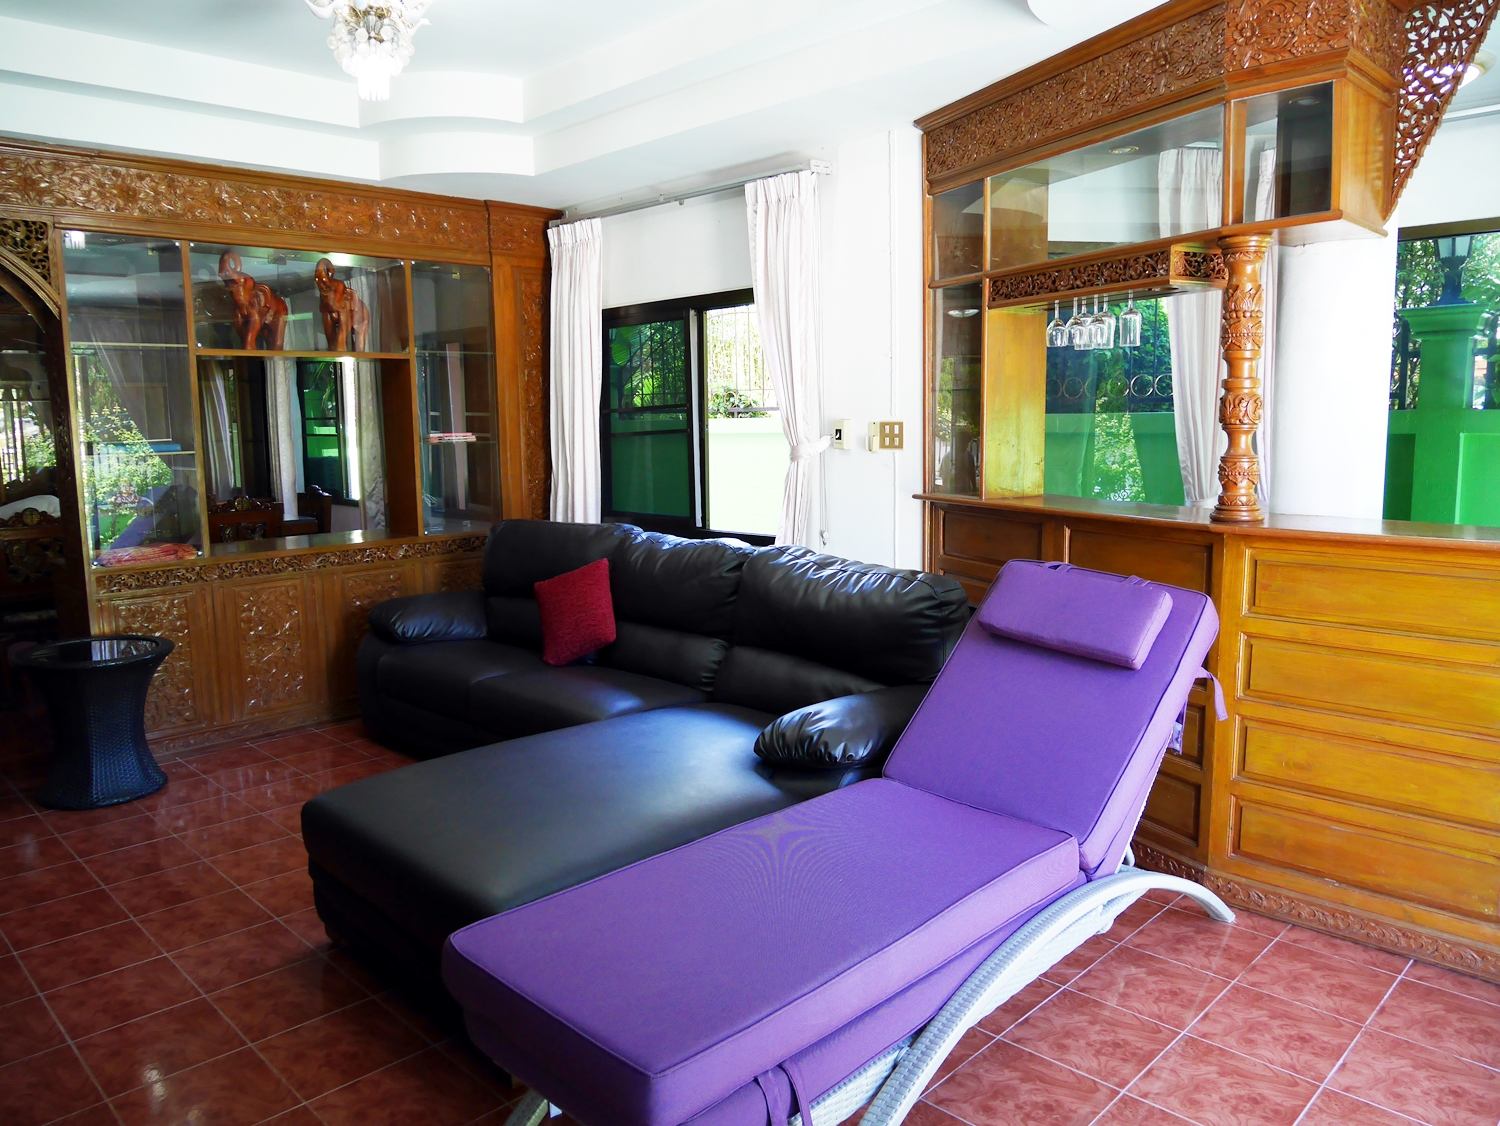 3 Bedrooms Villa for rent near Phuket Country club Kathu